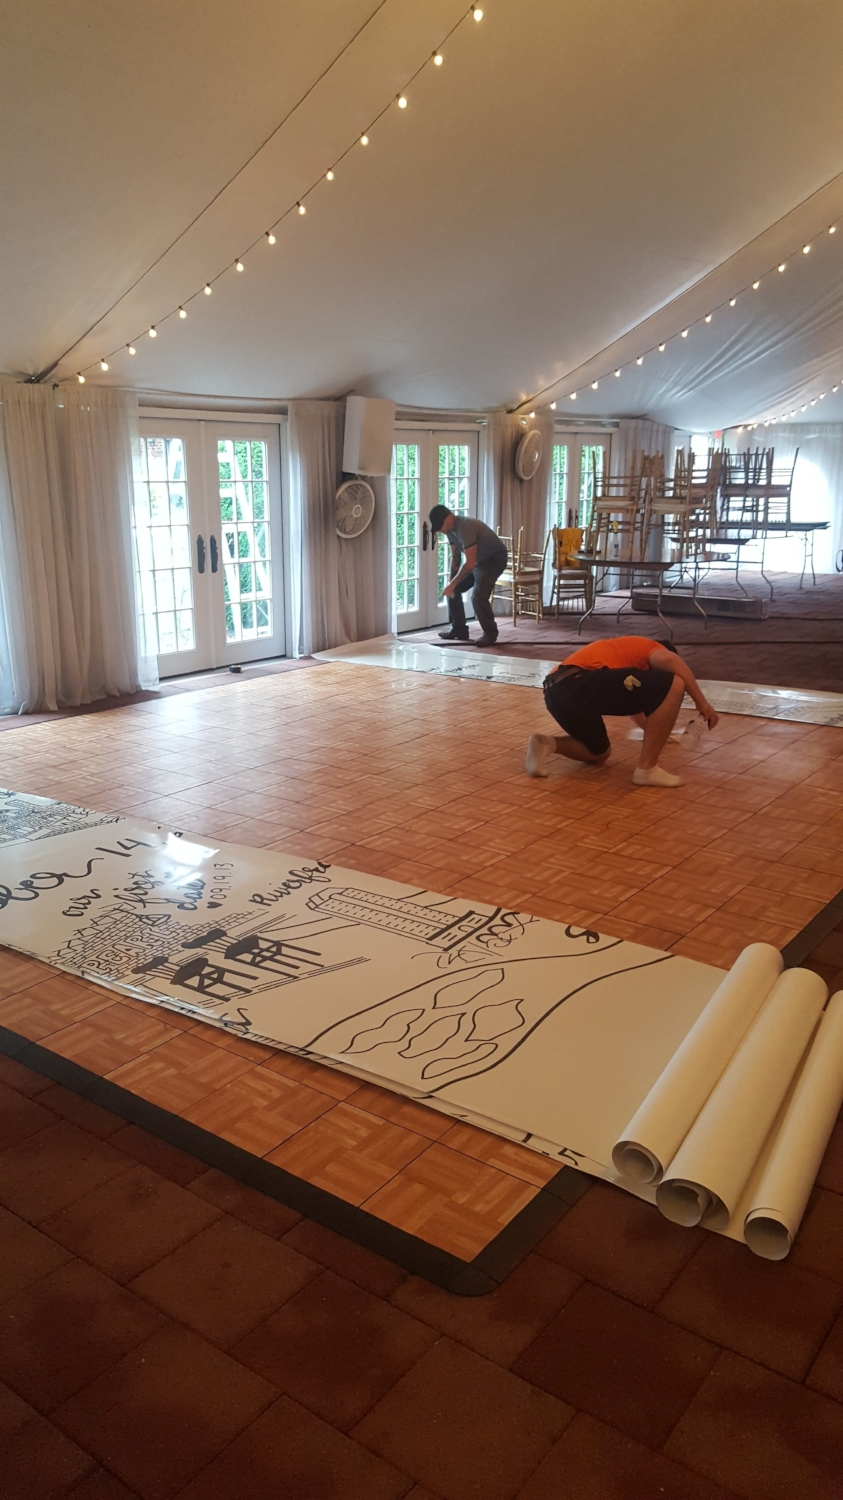 RVA Graphics and Wraps  laid the dance floor with precision. The transformation from parquet to art was night and day.